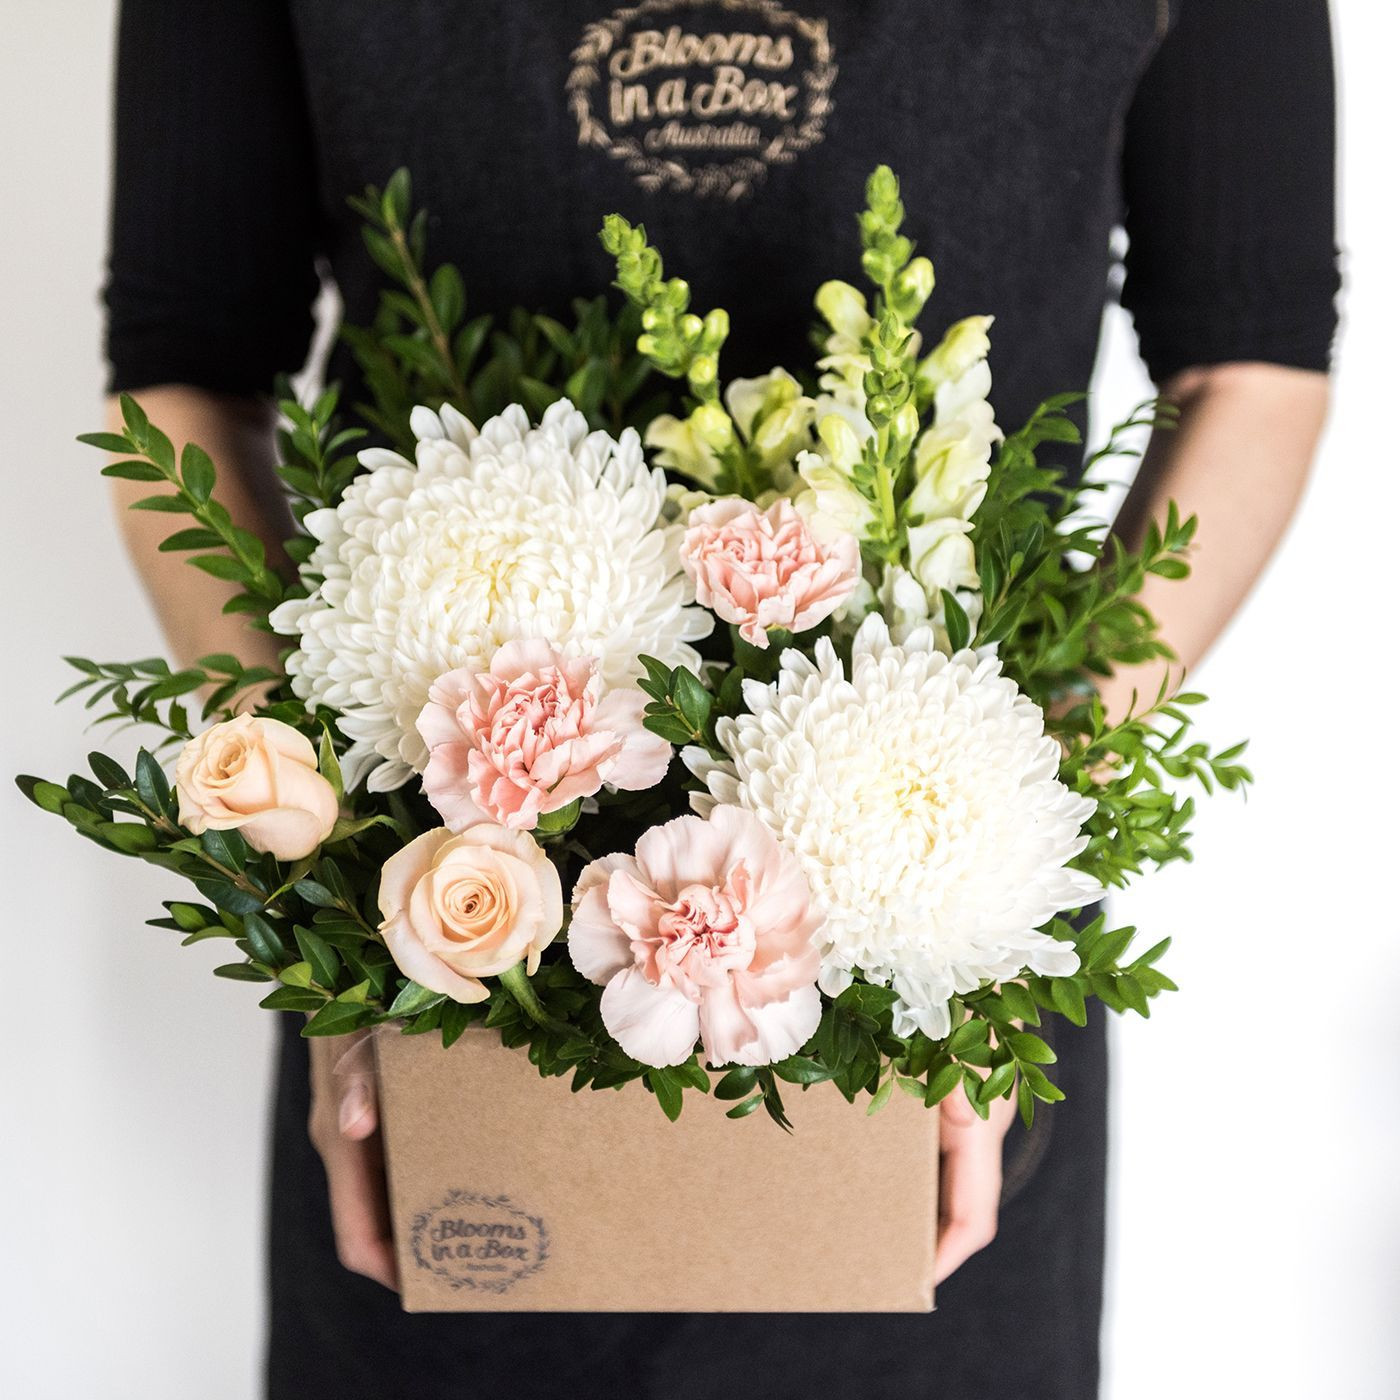 Blooms in a Box beautifully arranged in a posy box Simply top up the